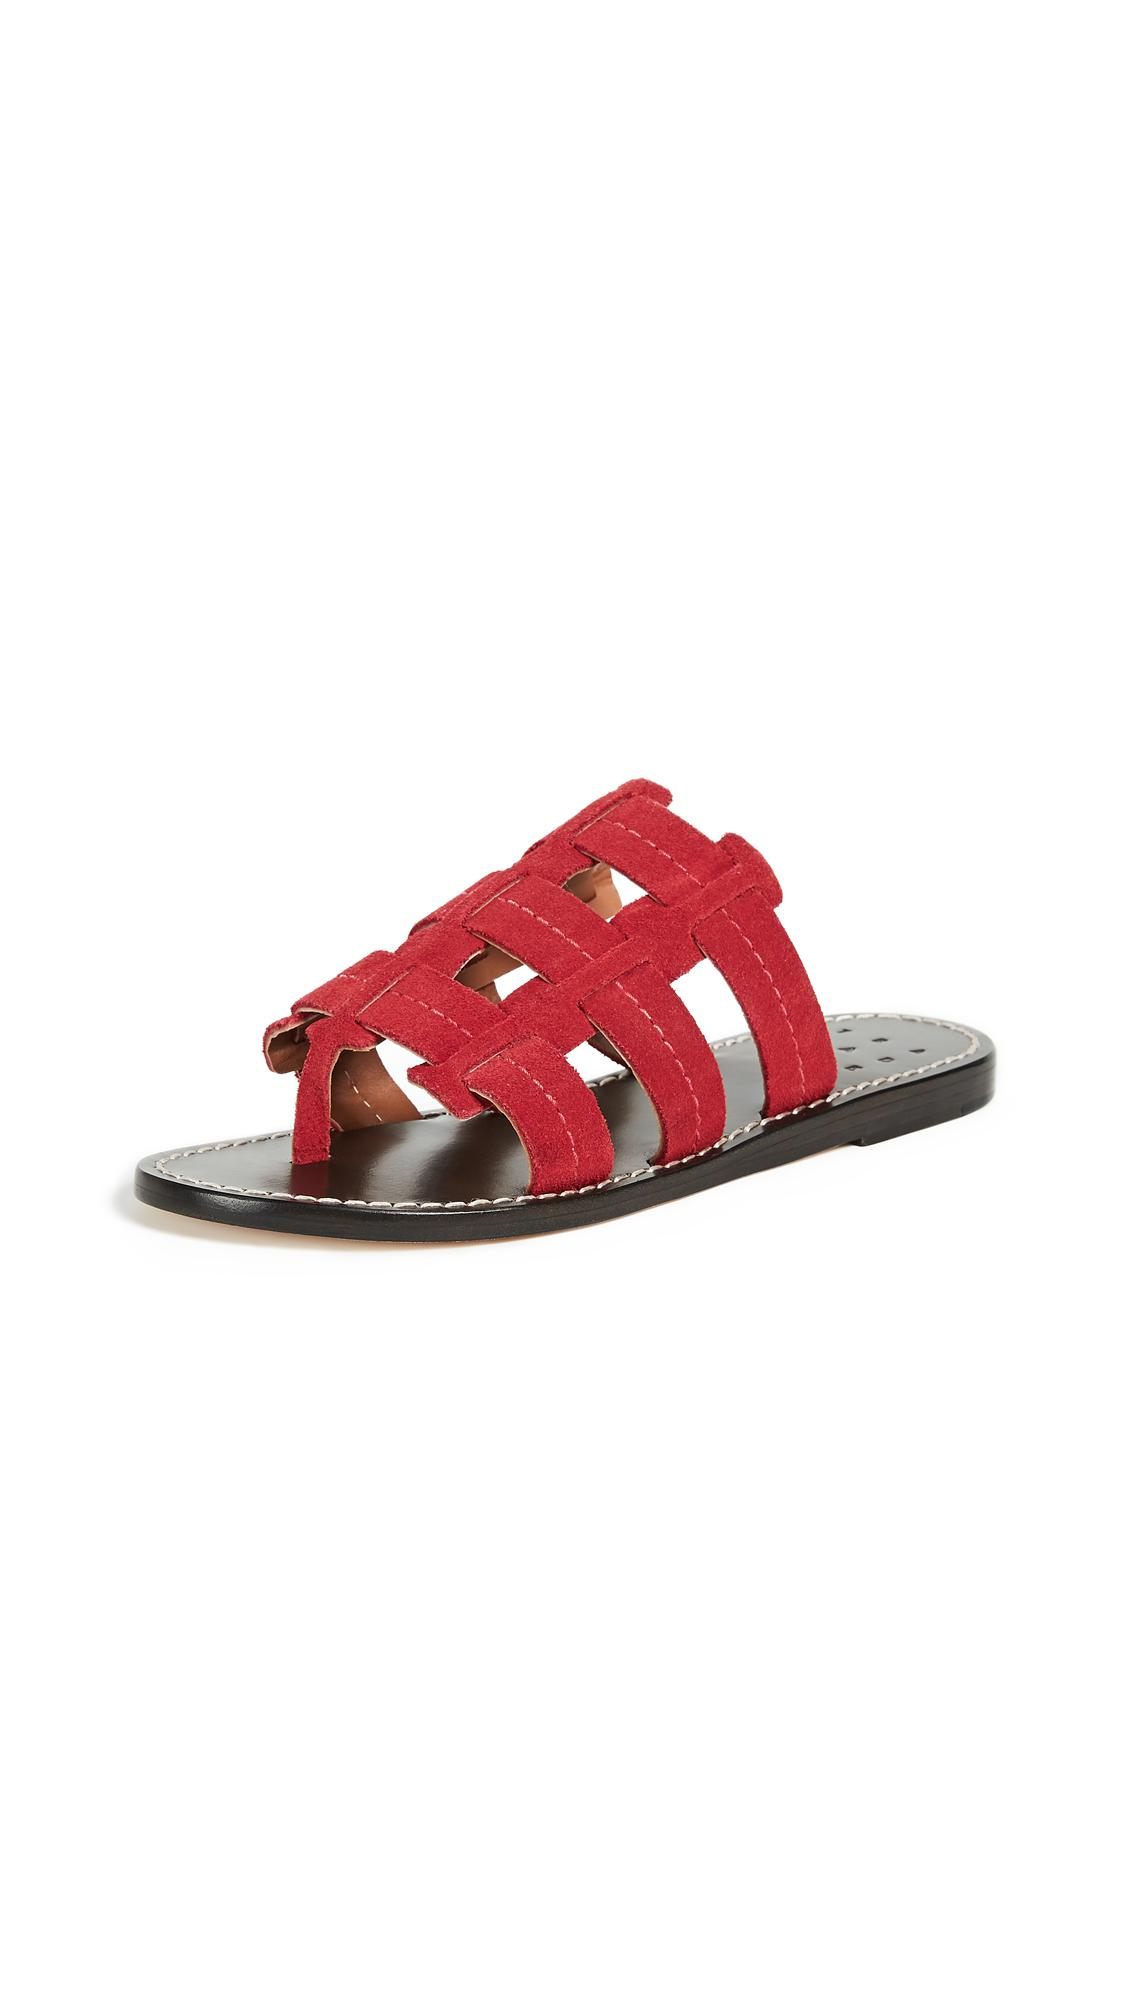 Cage Suede Sandals - Red Trademark Nescu